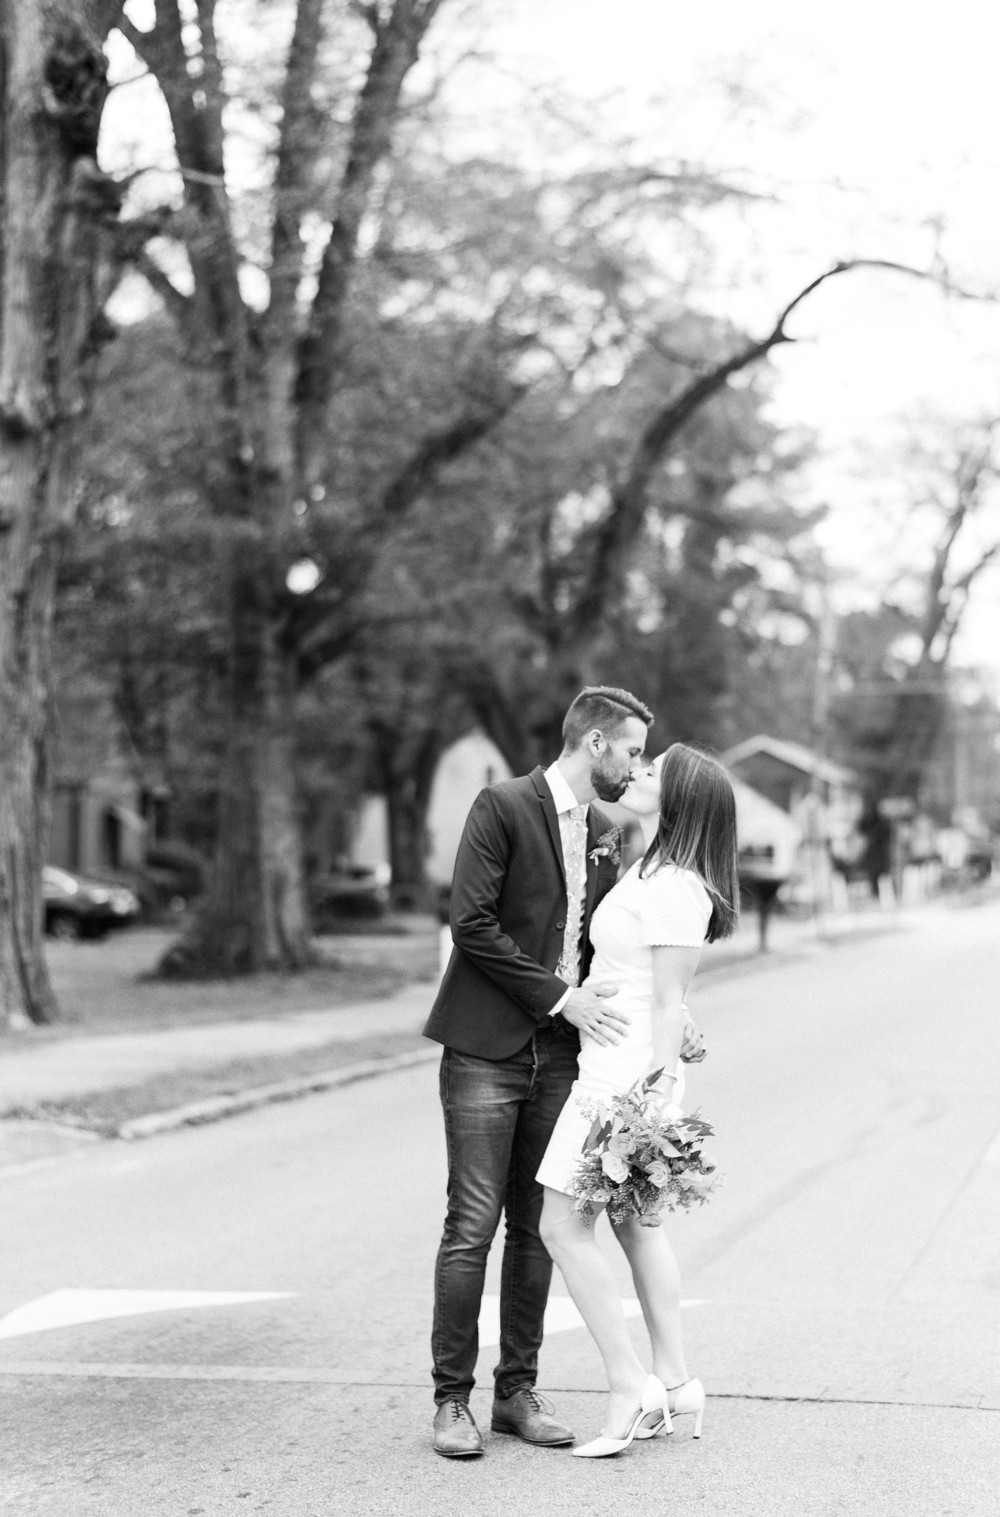 a bride and groom wearing nice dresses getting married kissing in the middle of the road in the midst of covid-19